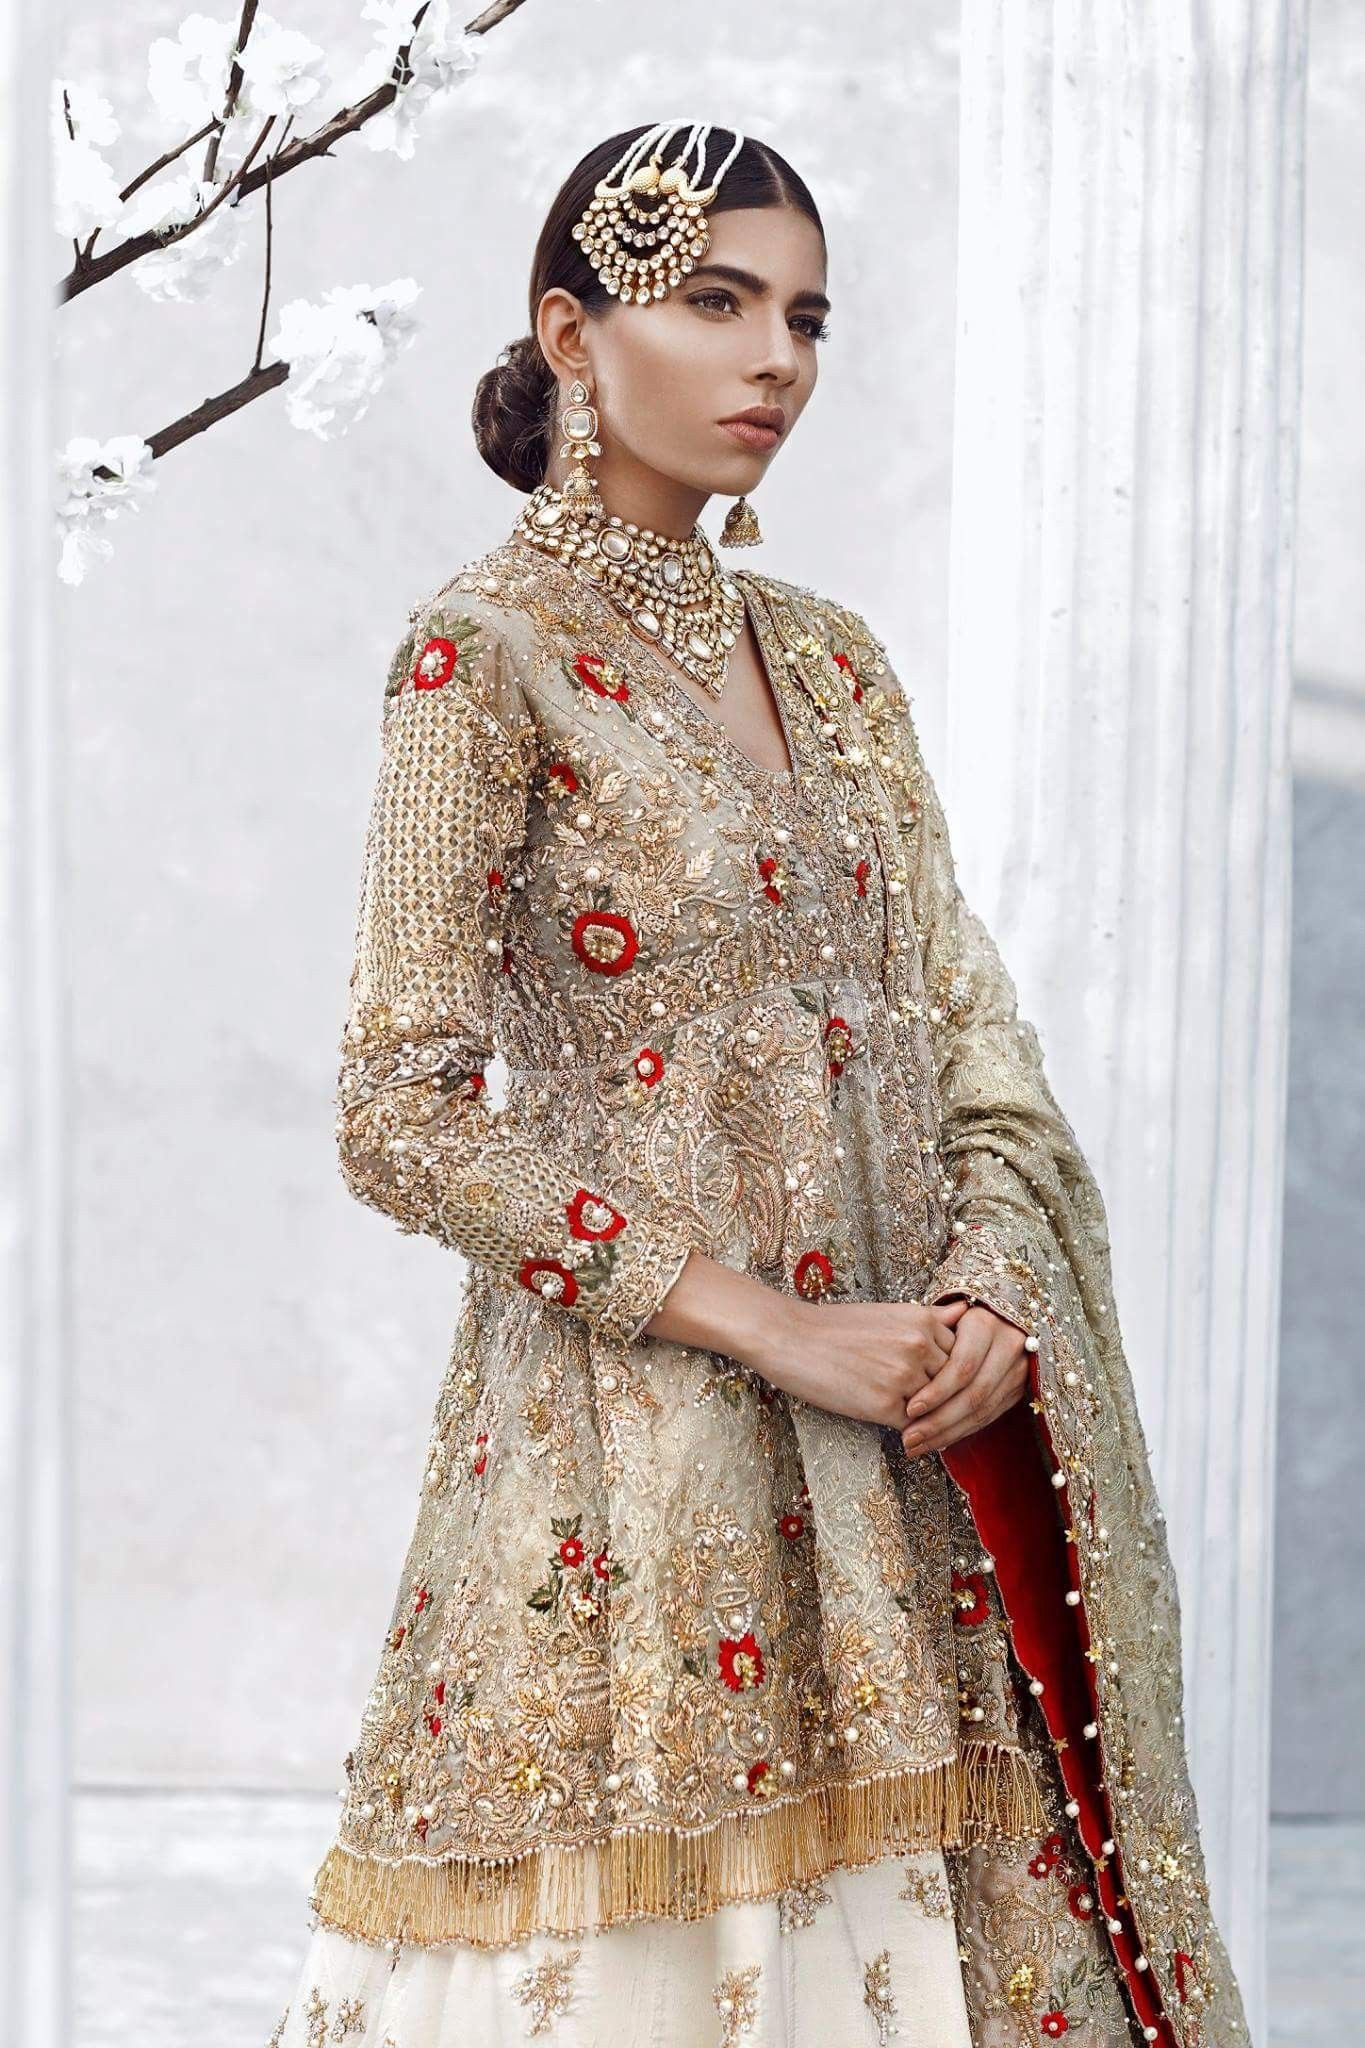 Get this fabulous outfit by ordering at zebaishcollection